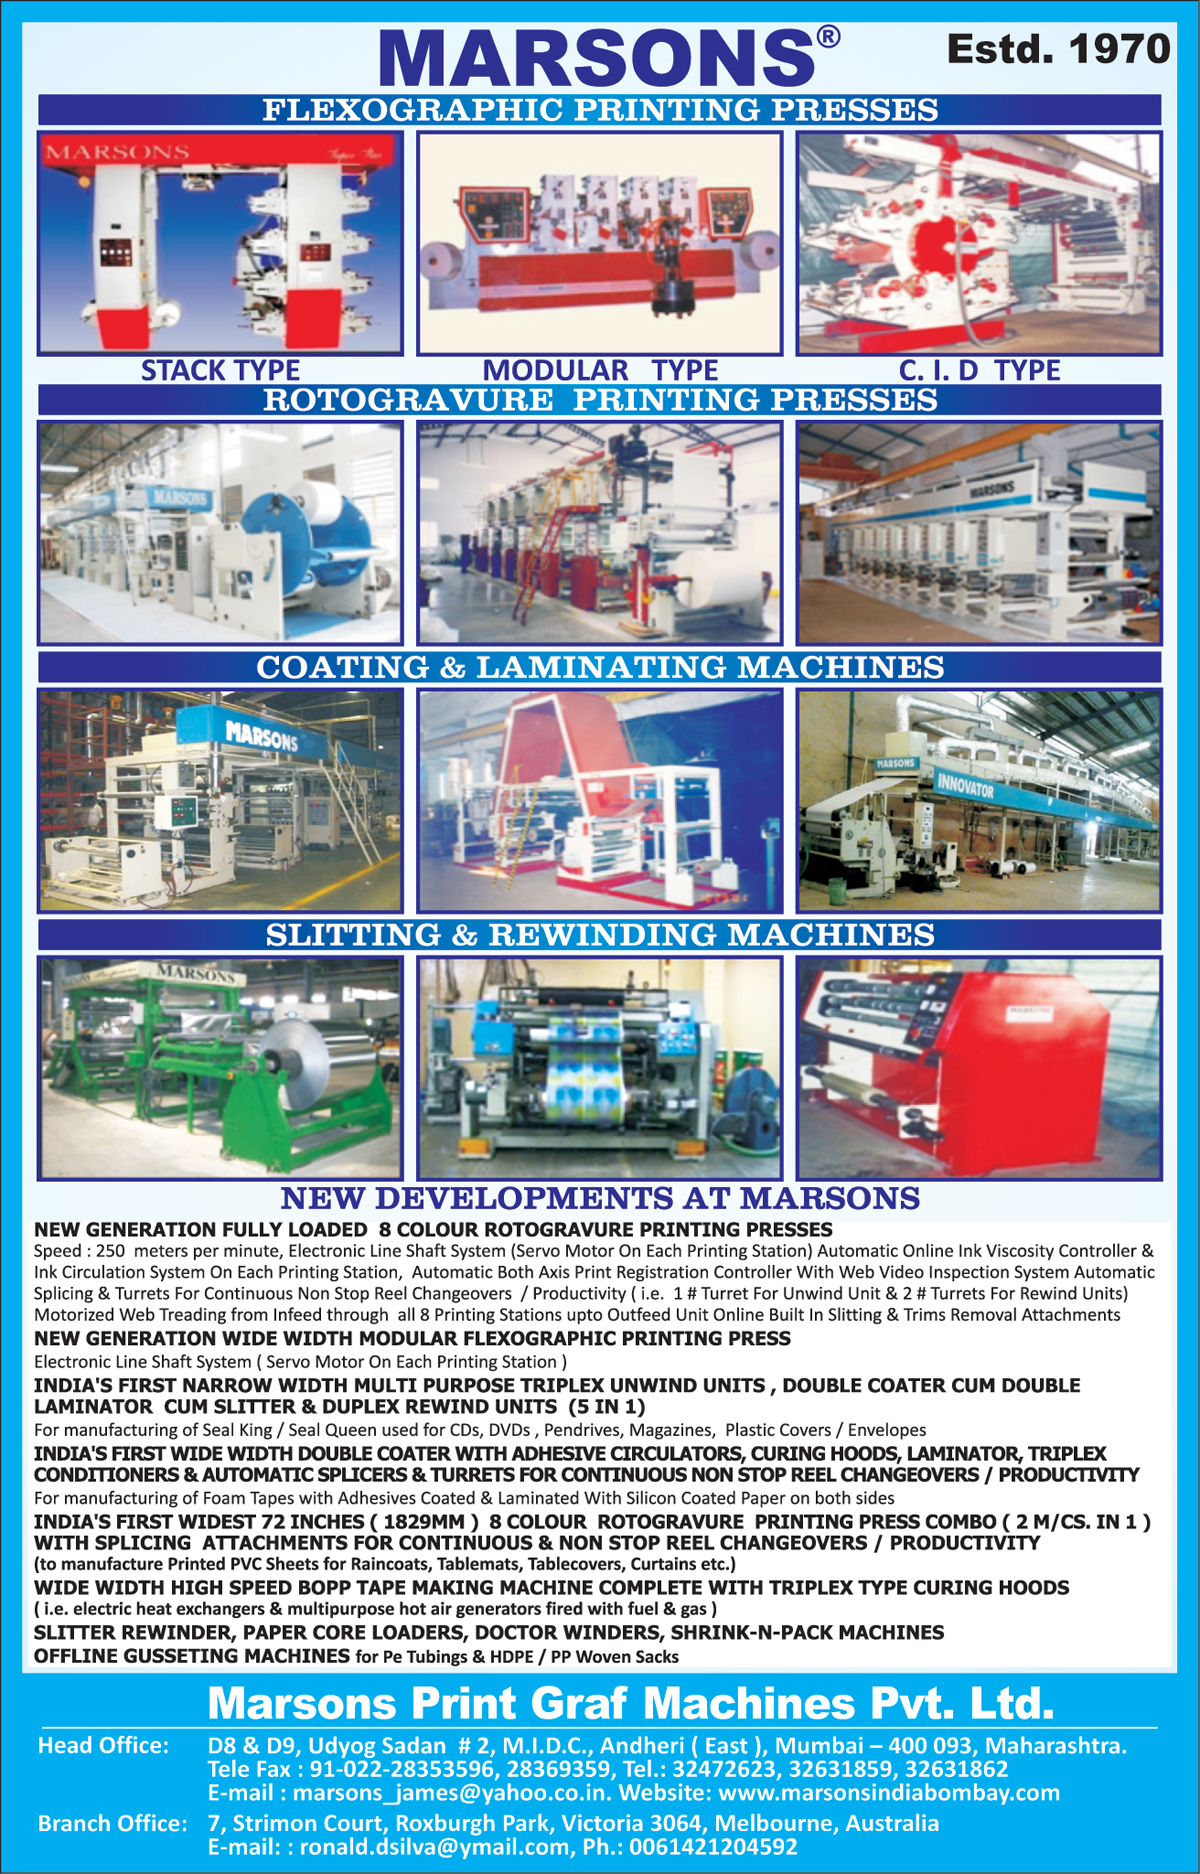 Flexographic Printing Presses, Stack Type Flexographic Printing Presses, CID Type Flexographic Printing Presses, Moduler Type Printing Presses, Coating Machines, Lamination Machines, Slitting Machines, Rewinding Machines, Offline Gusseting Machines, Shrink N Pack Machines,Rotogravure Printing Presses